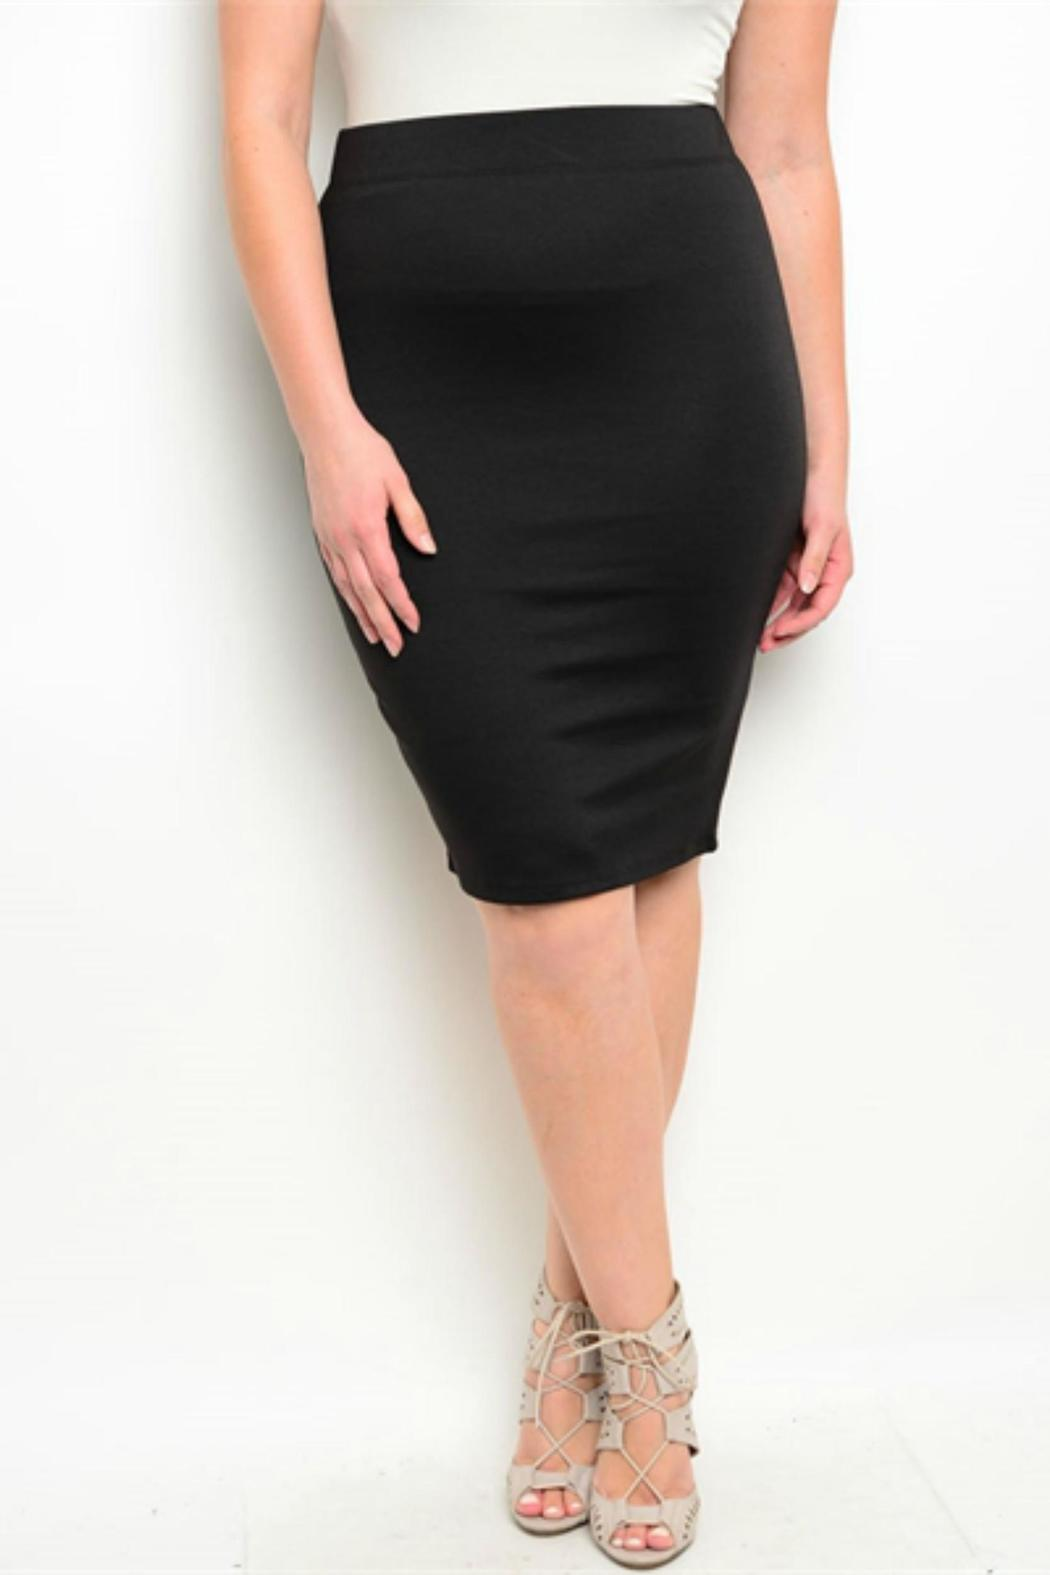 cb75999b7a ALICE LA Plus-Size Pencil Skirt from Idaho by HiPs — Shoptiques